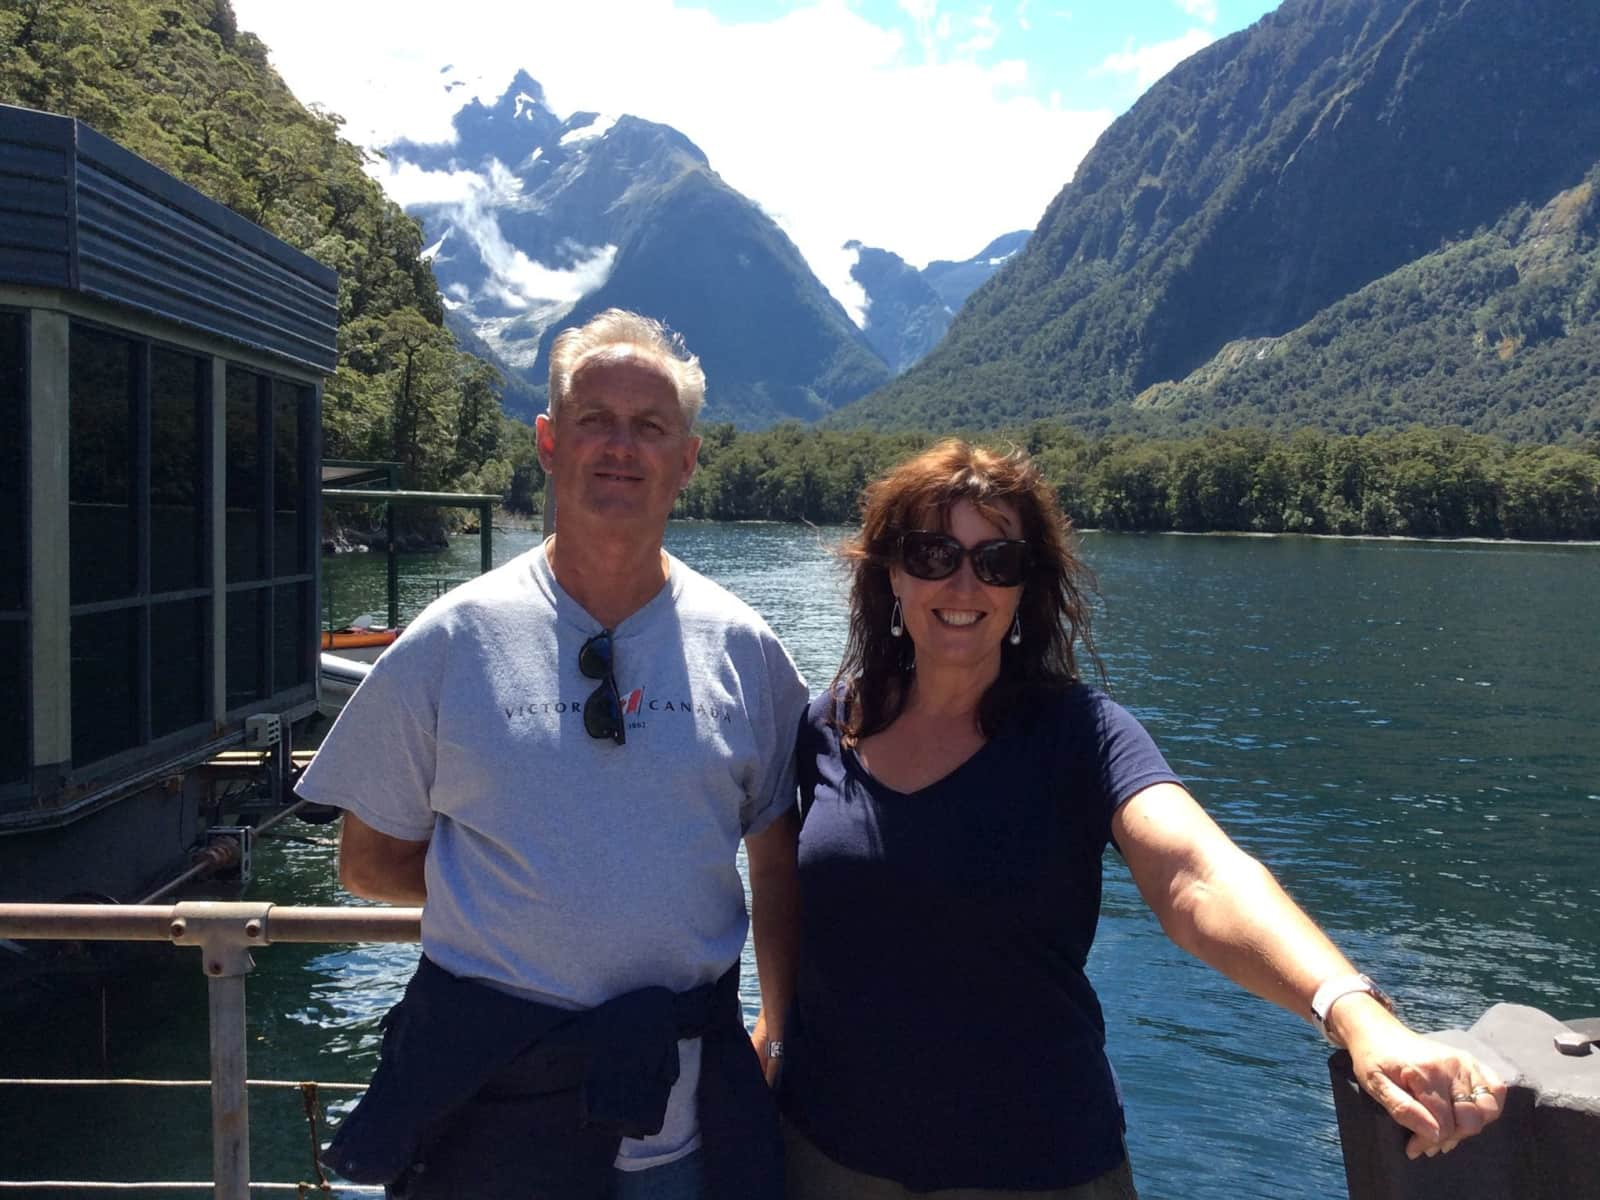 Lesley & Dave from Perth, Western Australia, Australia